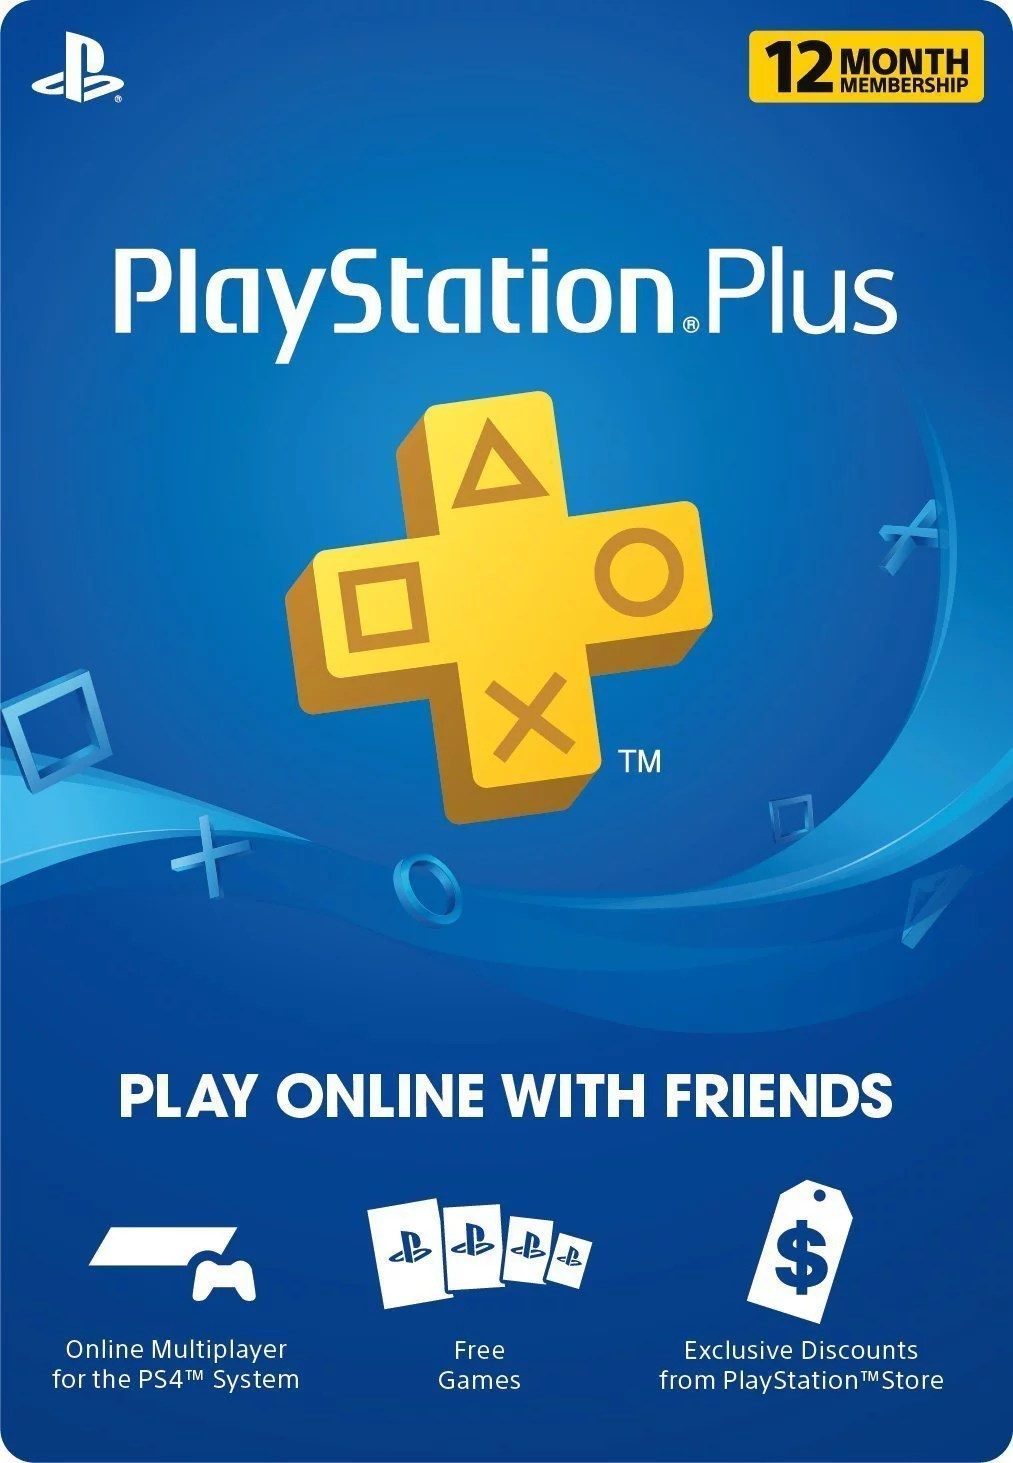 Sony Psn Live Subscription Card 12 Month Membership For